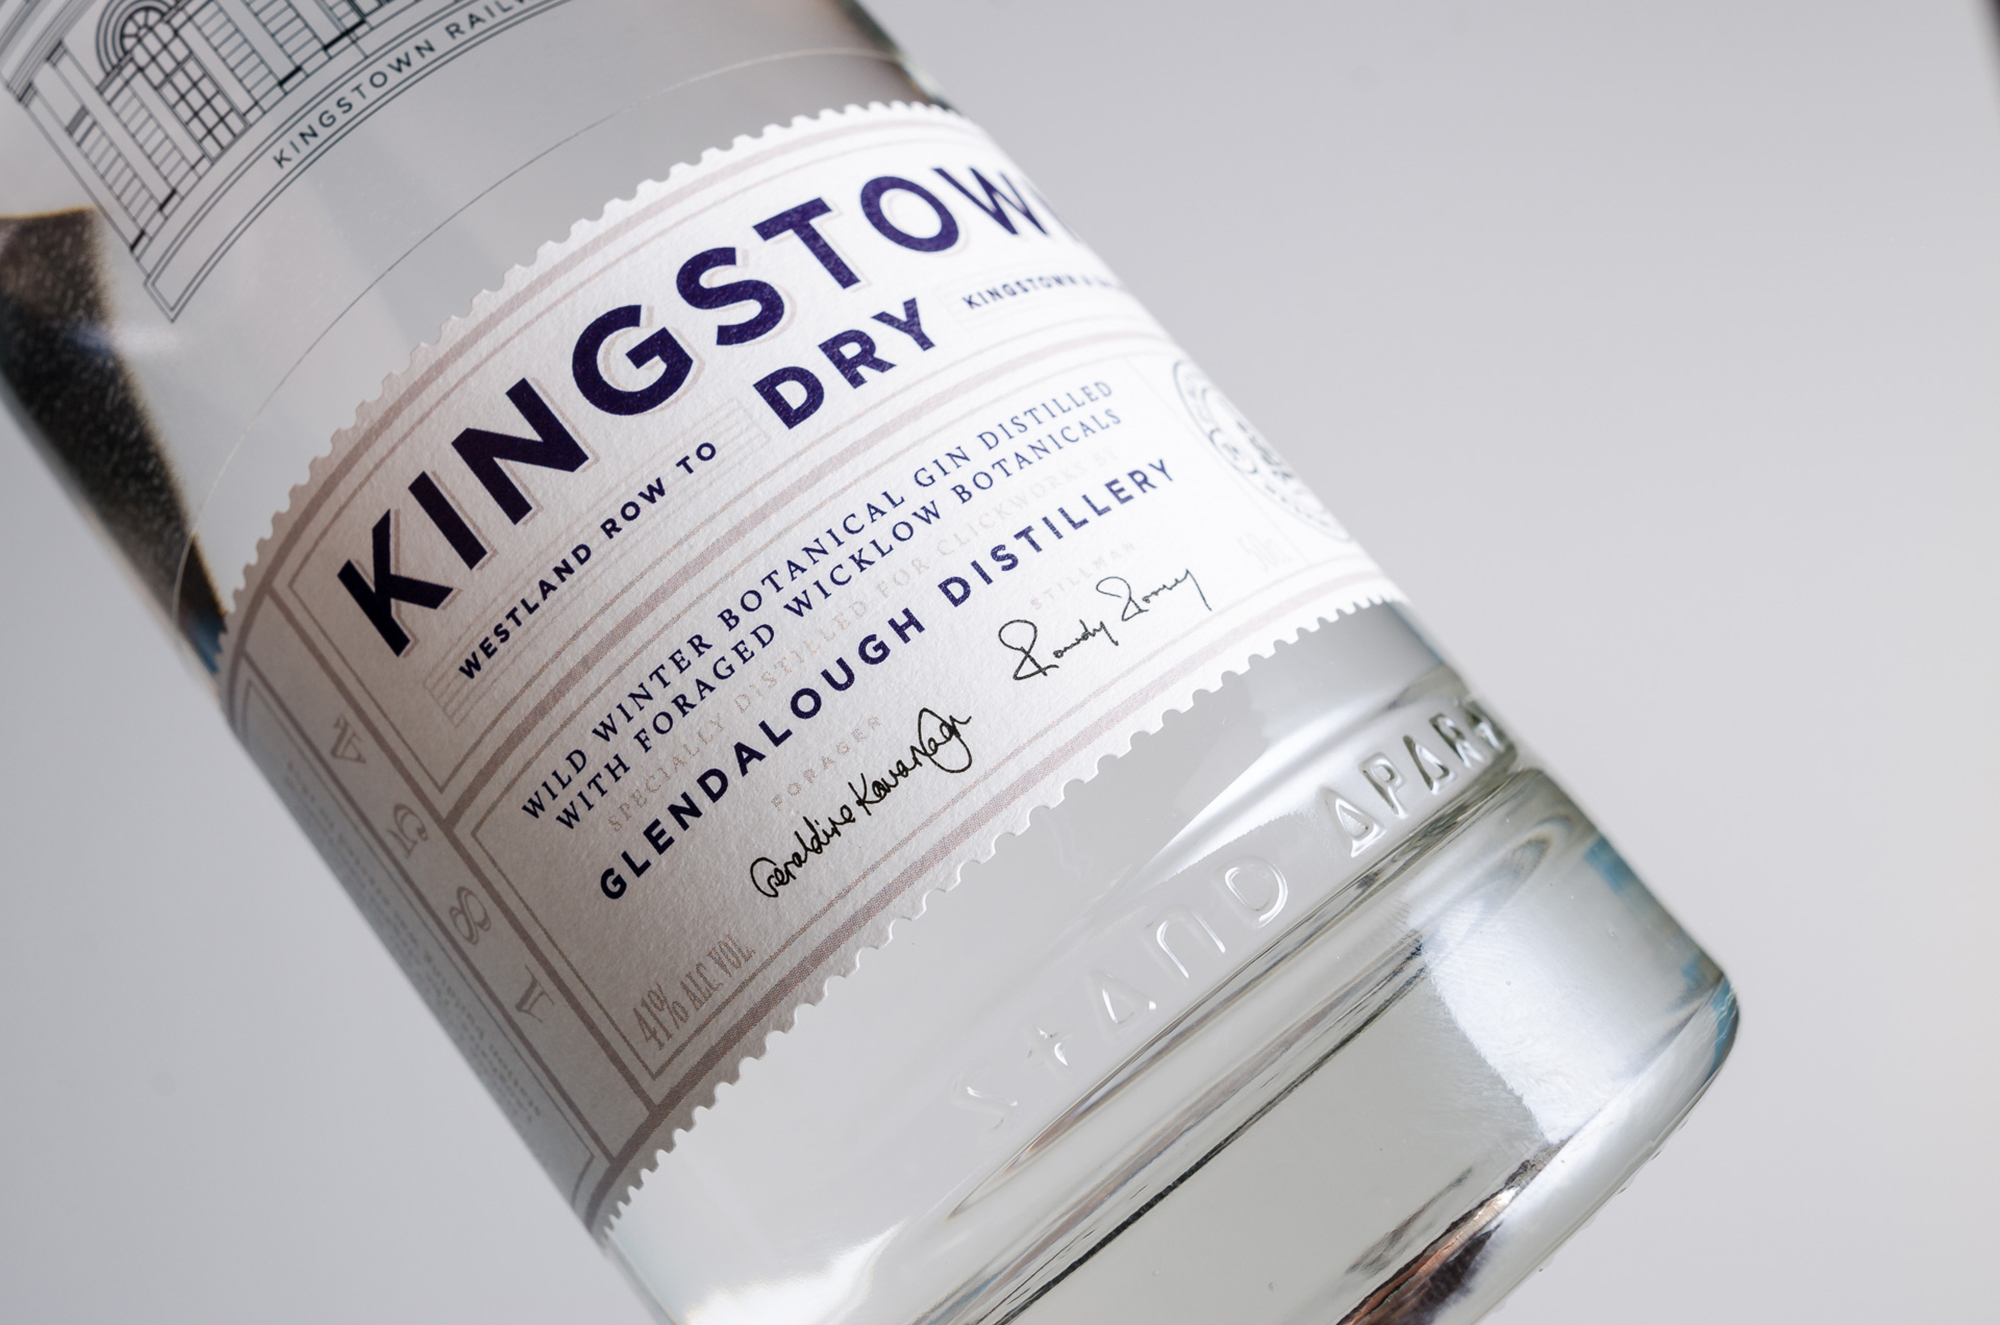 Cover image: Kingstown Dry Gin